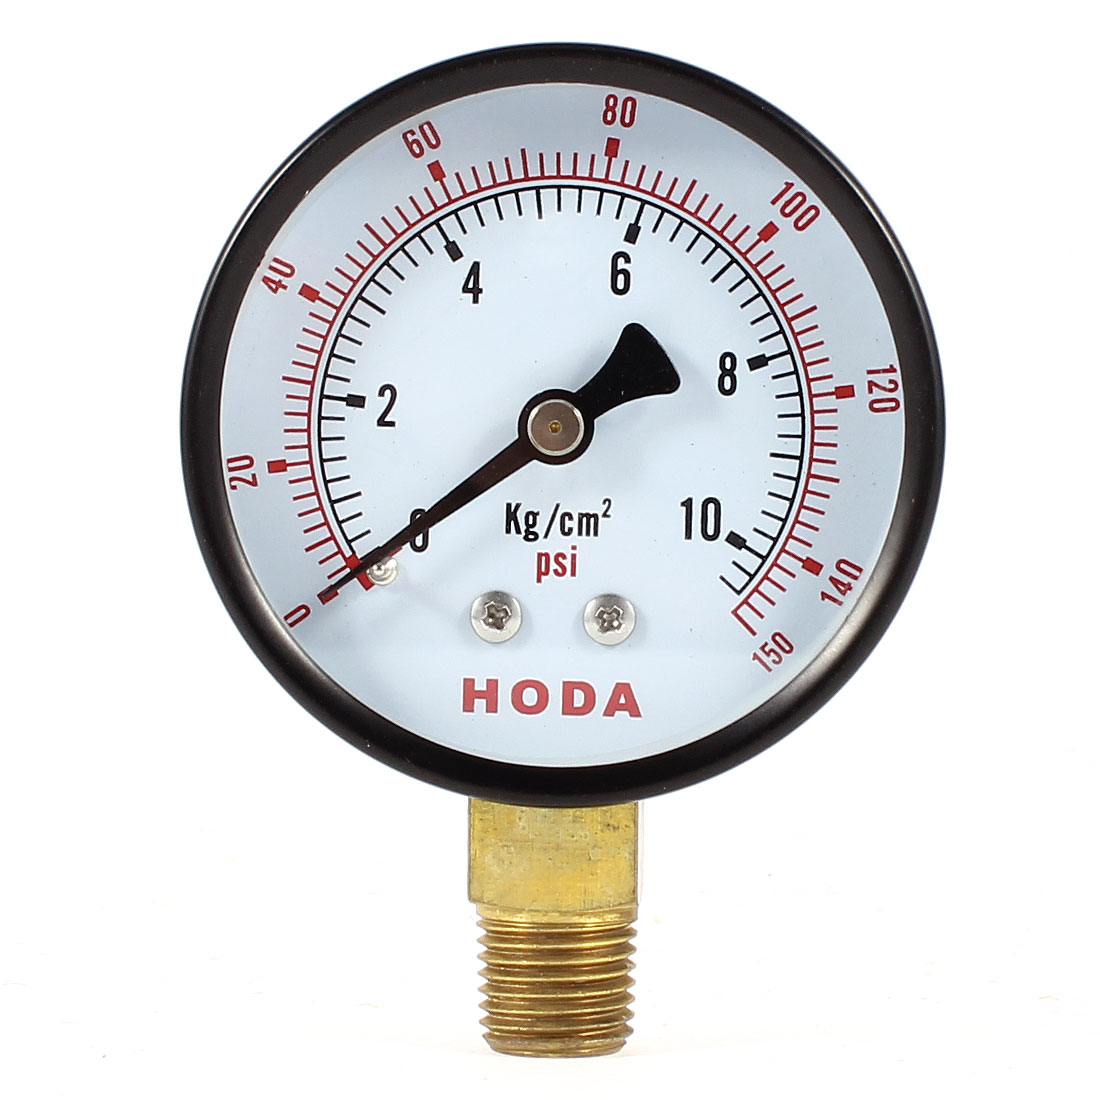 Replacing Round Shaped Dial 0-150 psi Pneumatic Compressed Air Pressure Gauge